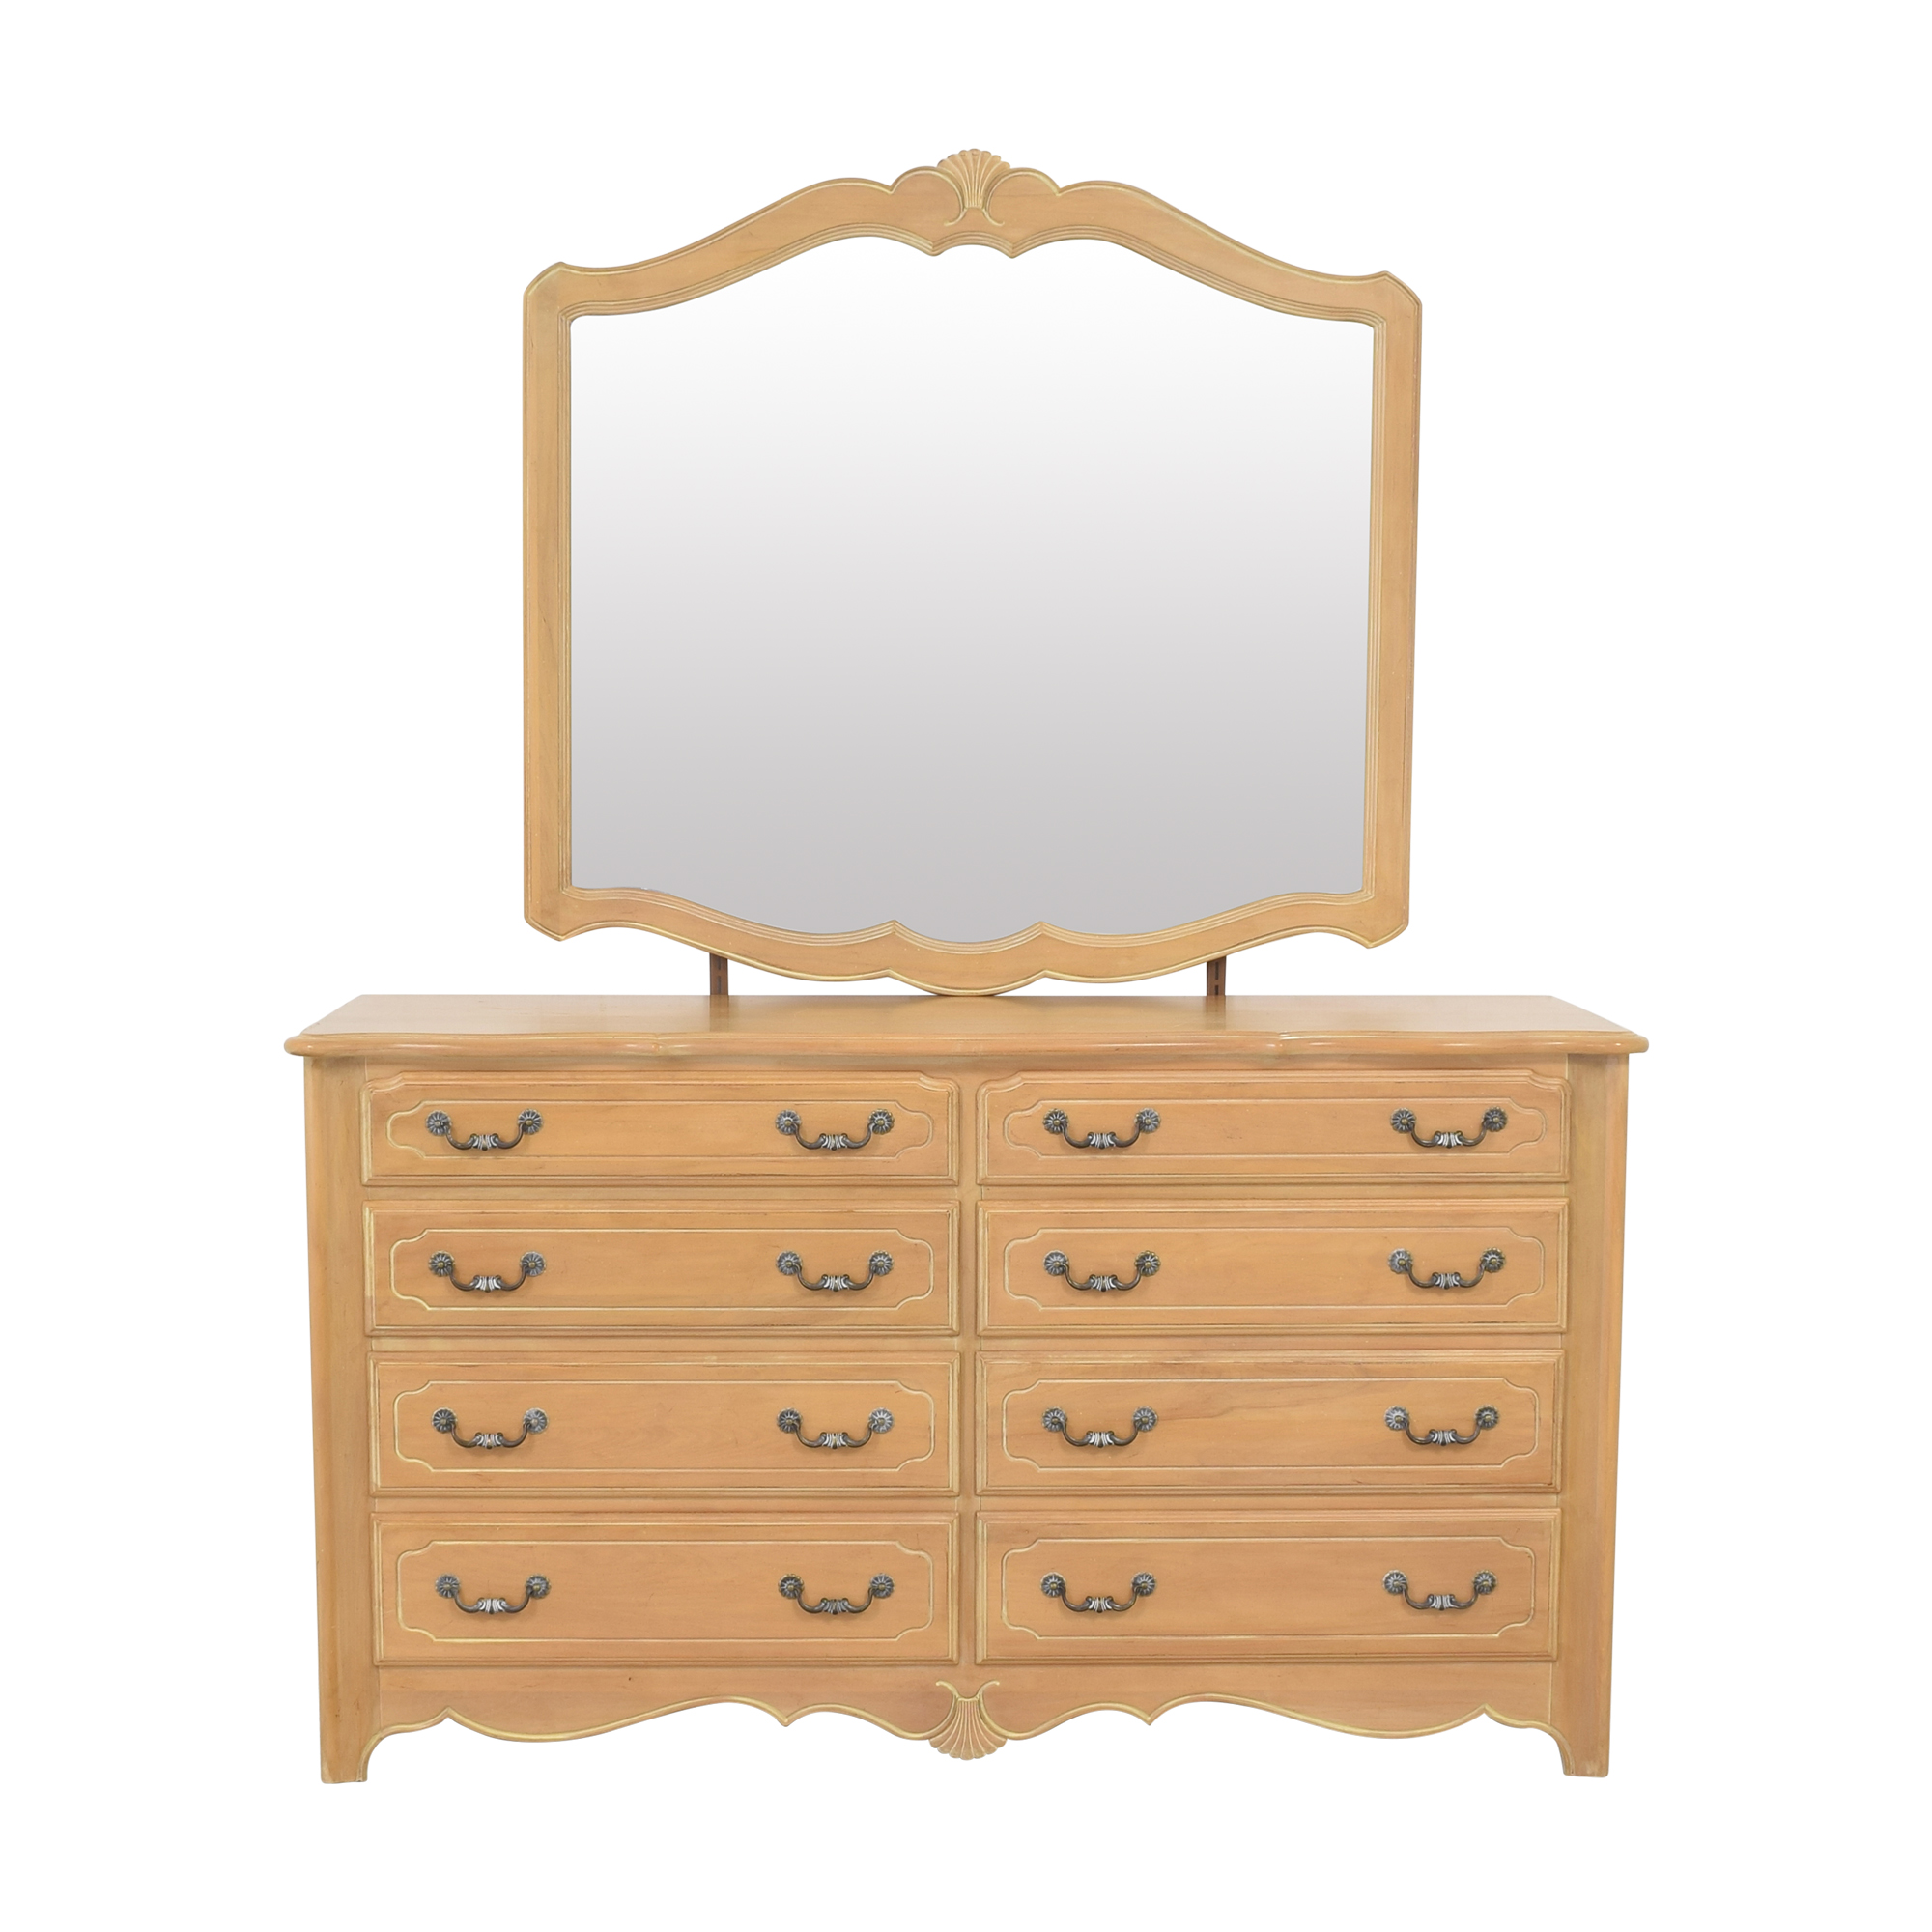 Ethan Allen Ethan Allen Country French Dresser with Mirror nyc